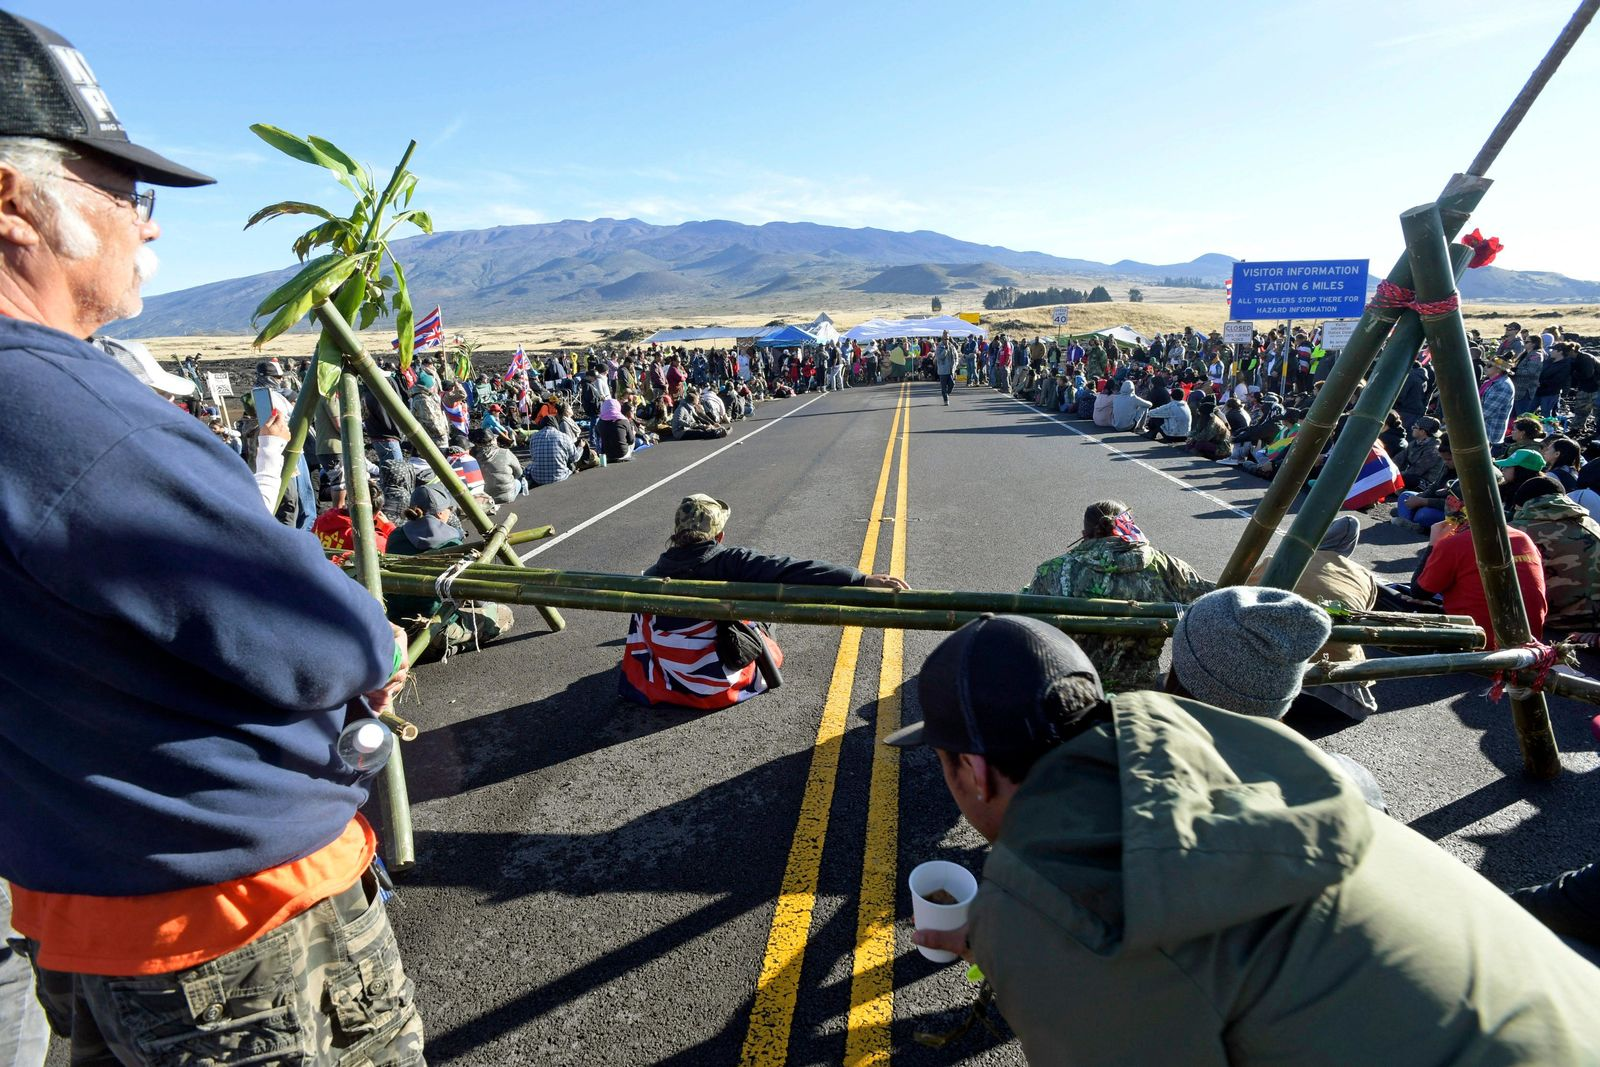 Protesters continue their opposition vigil against the construction of the Thirty Meter Telescope at Mauna Kea on the Big Island of Hawaii Friday, July 19, 2019. (Bruce Asato/Honolulu Star-Advertiser via AP)